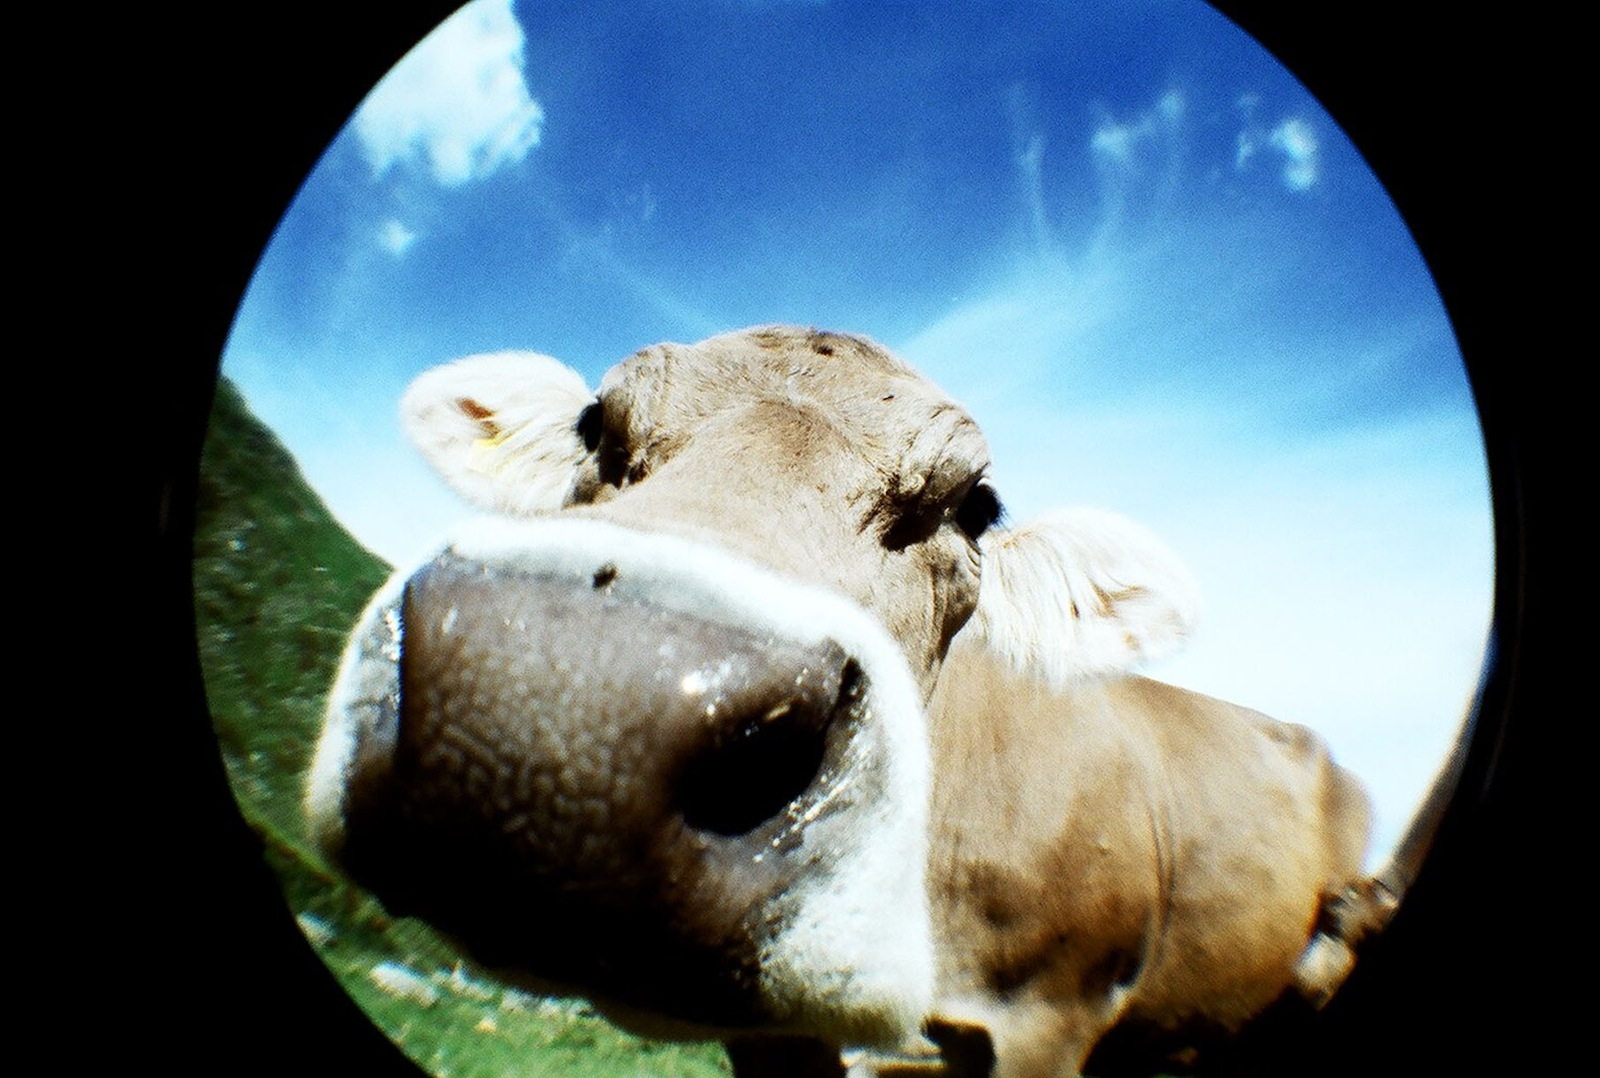 An example of a fisheye photograph, taken with Lomography's Shiawase camera.